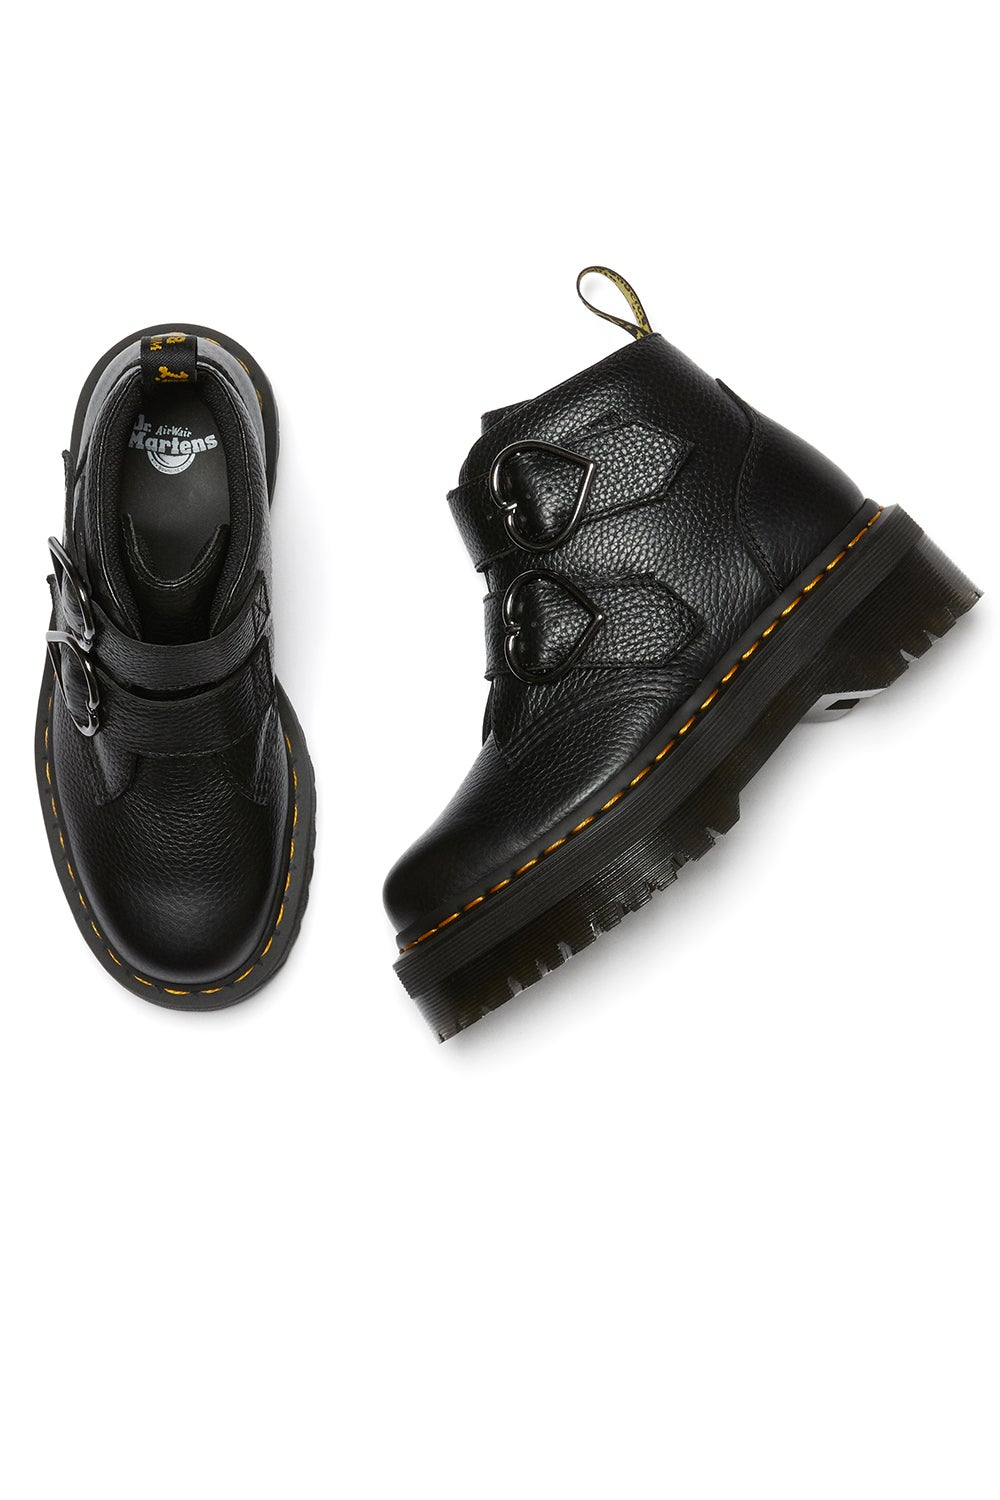 Dr. Martens Devon Heart 2 Strap Boot Black